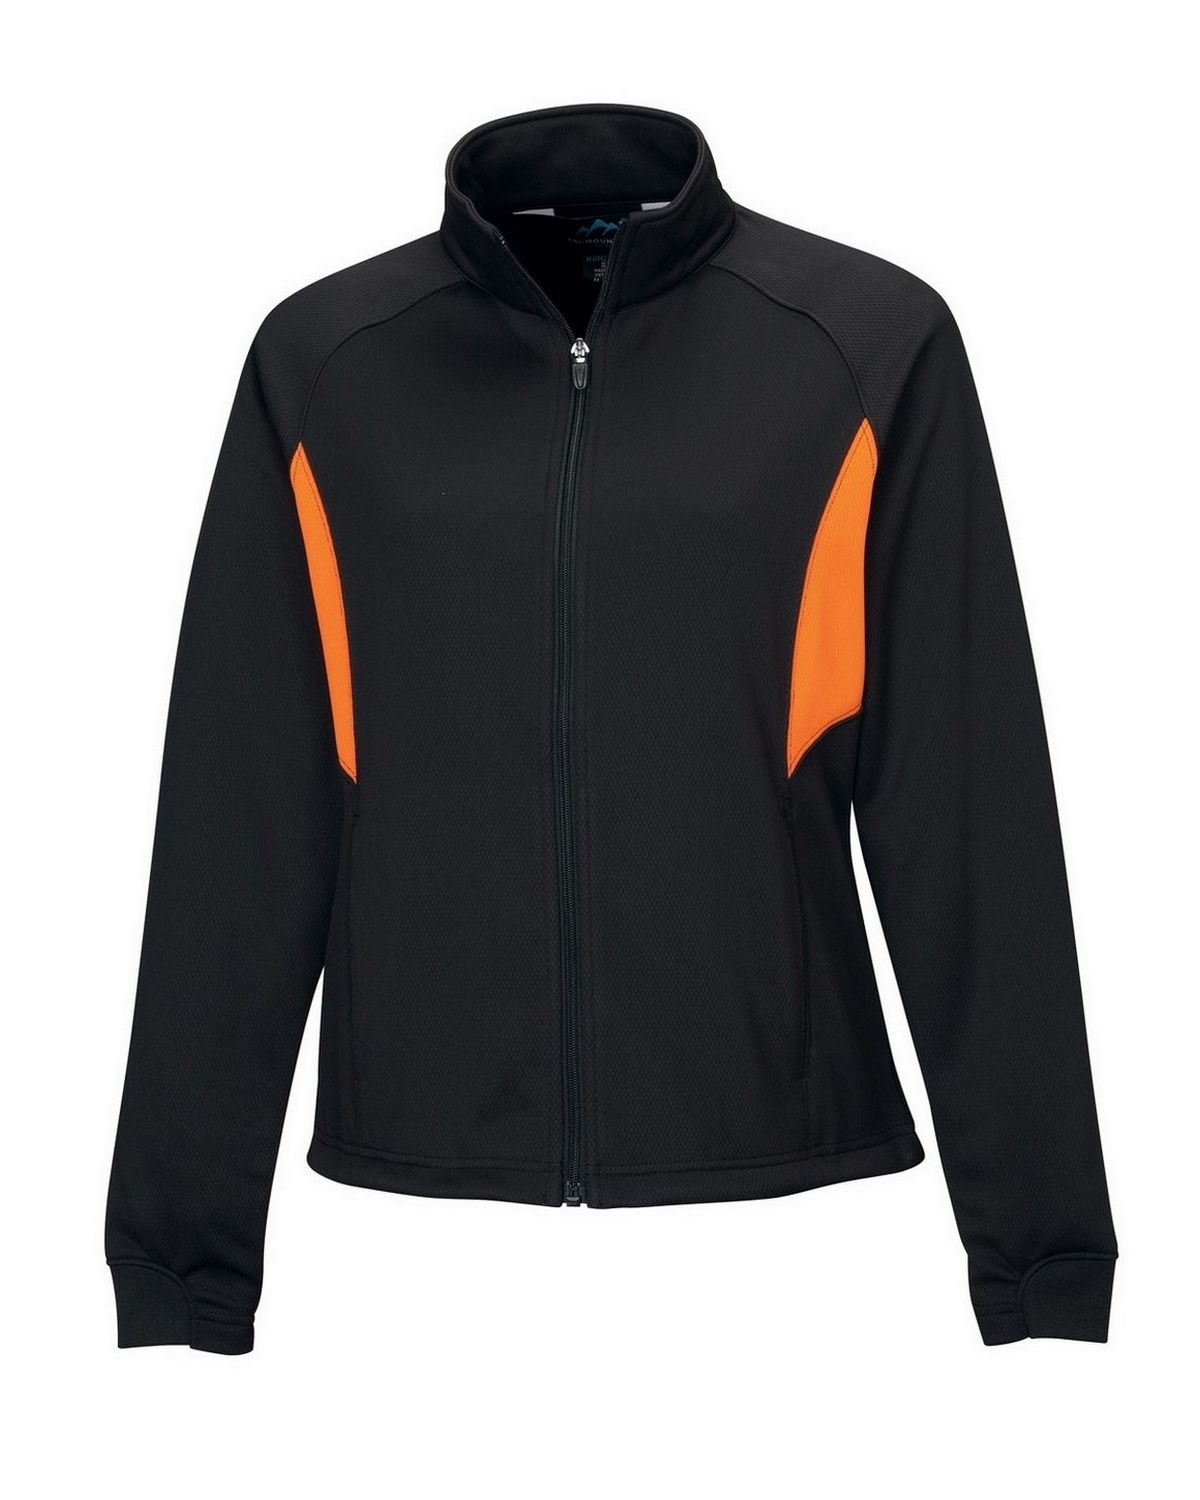 Tri-Mountain Performance 7346 Lady Tornado - Black/Dark Orange - L 7346